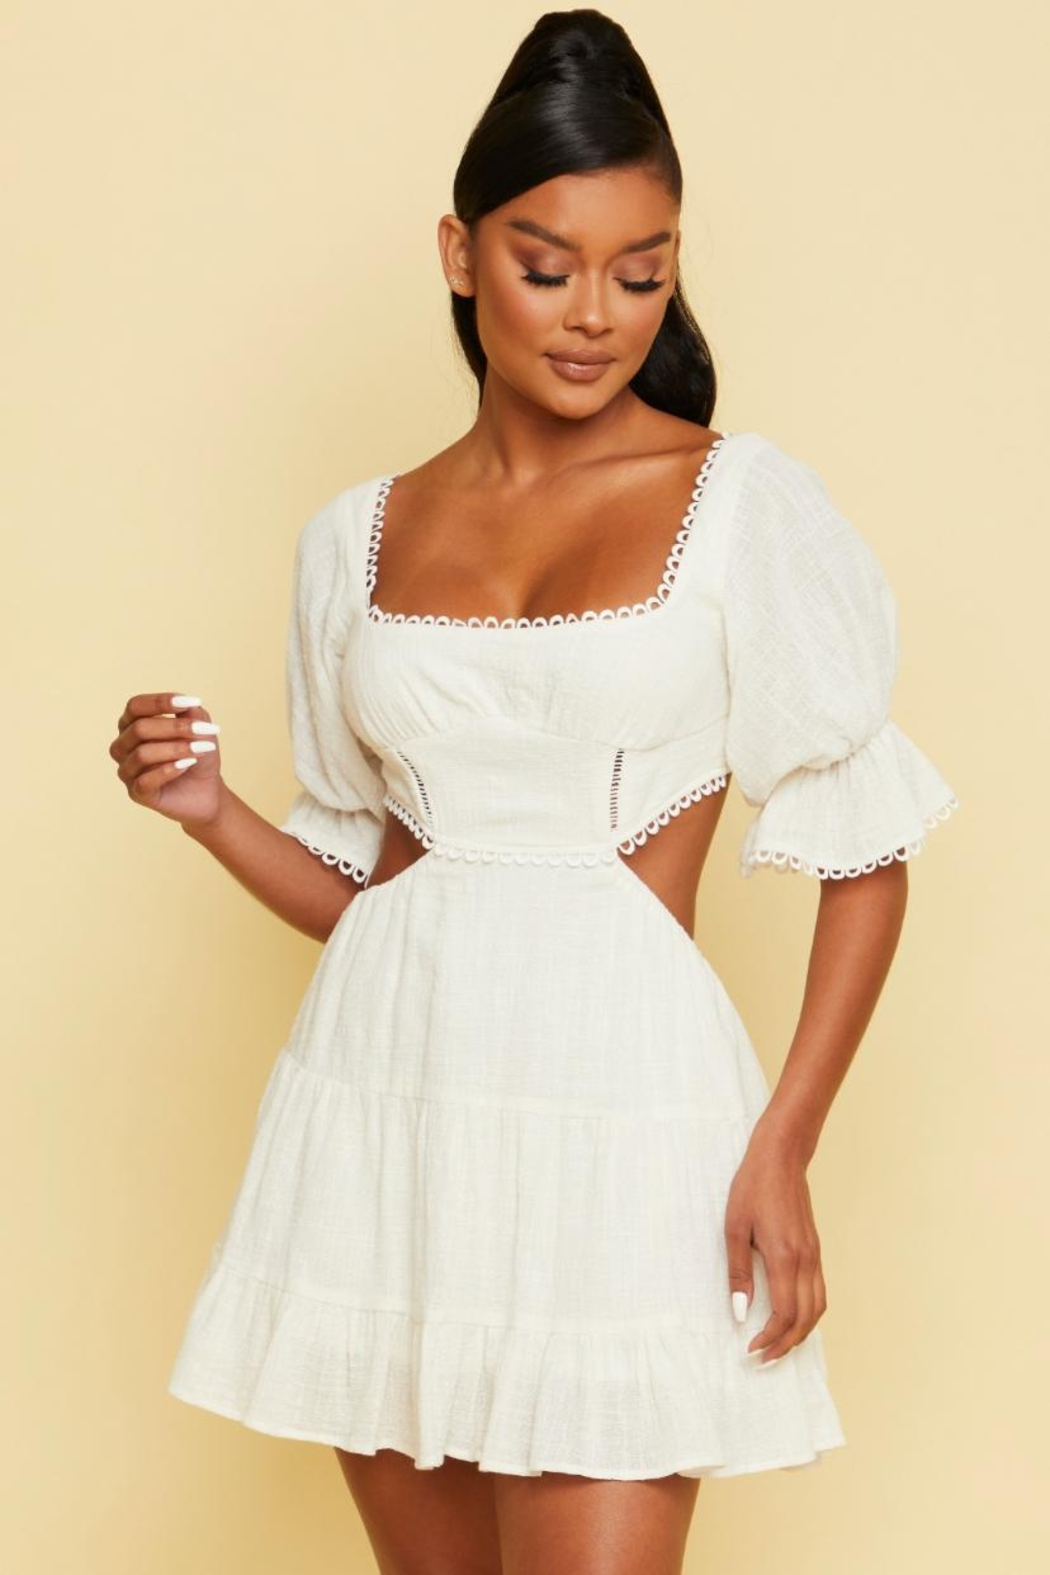 luxxel Tiered Cut-Out Dress - Main Image